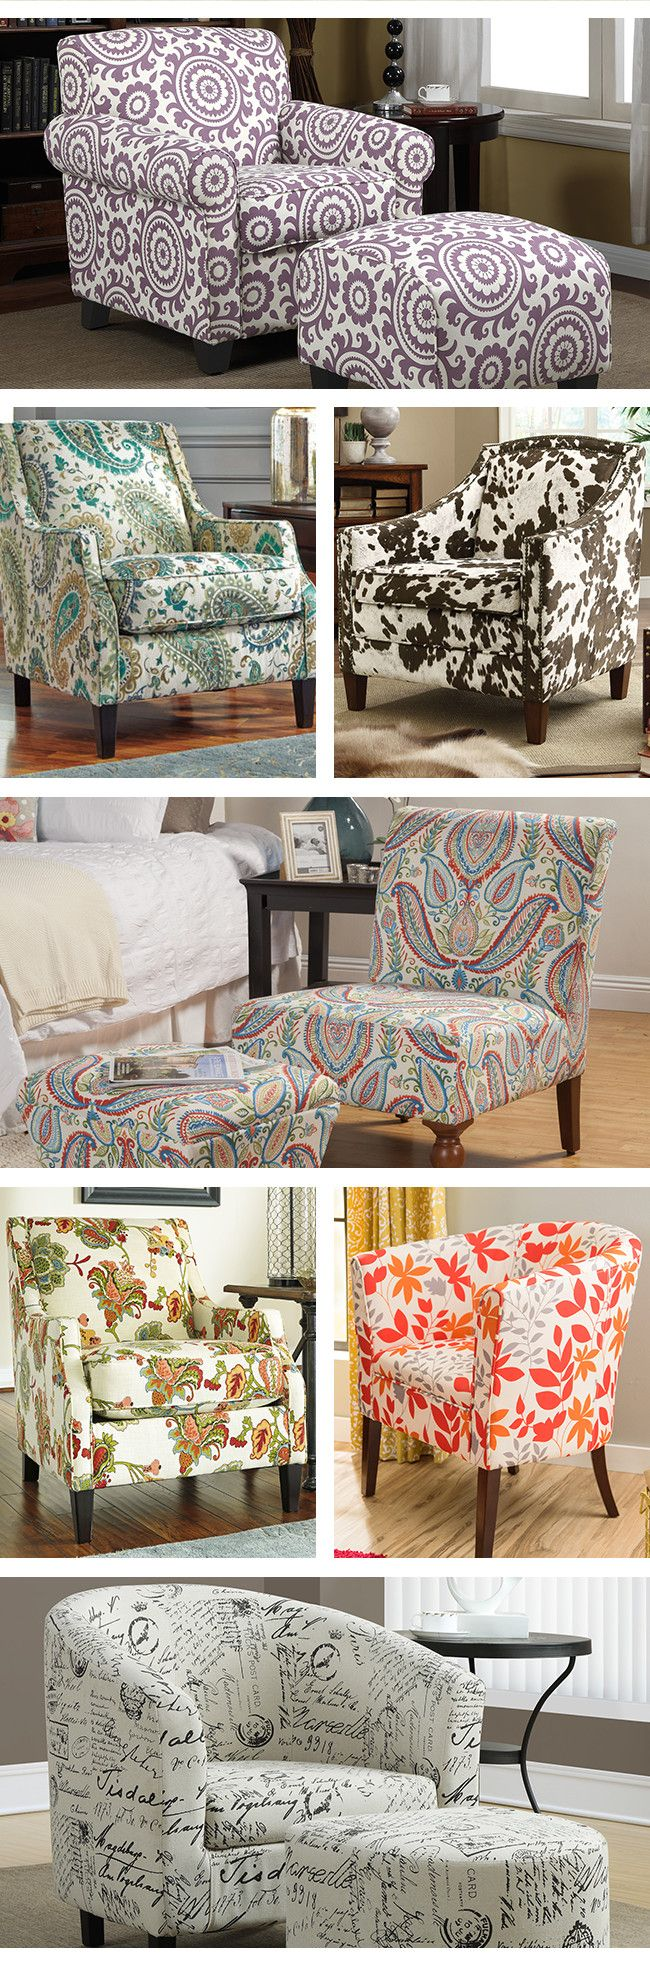 Online Home Store For Furniture Decor Outdoors More Wayfair Home Decor Decor Home Furnishings